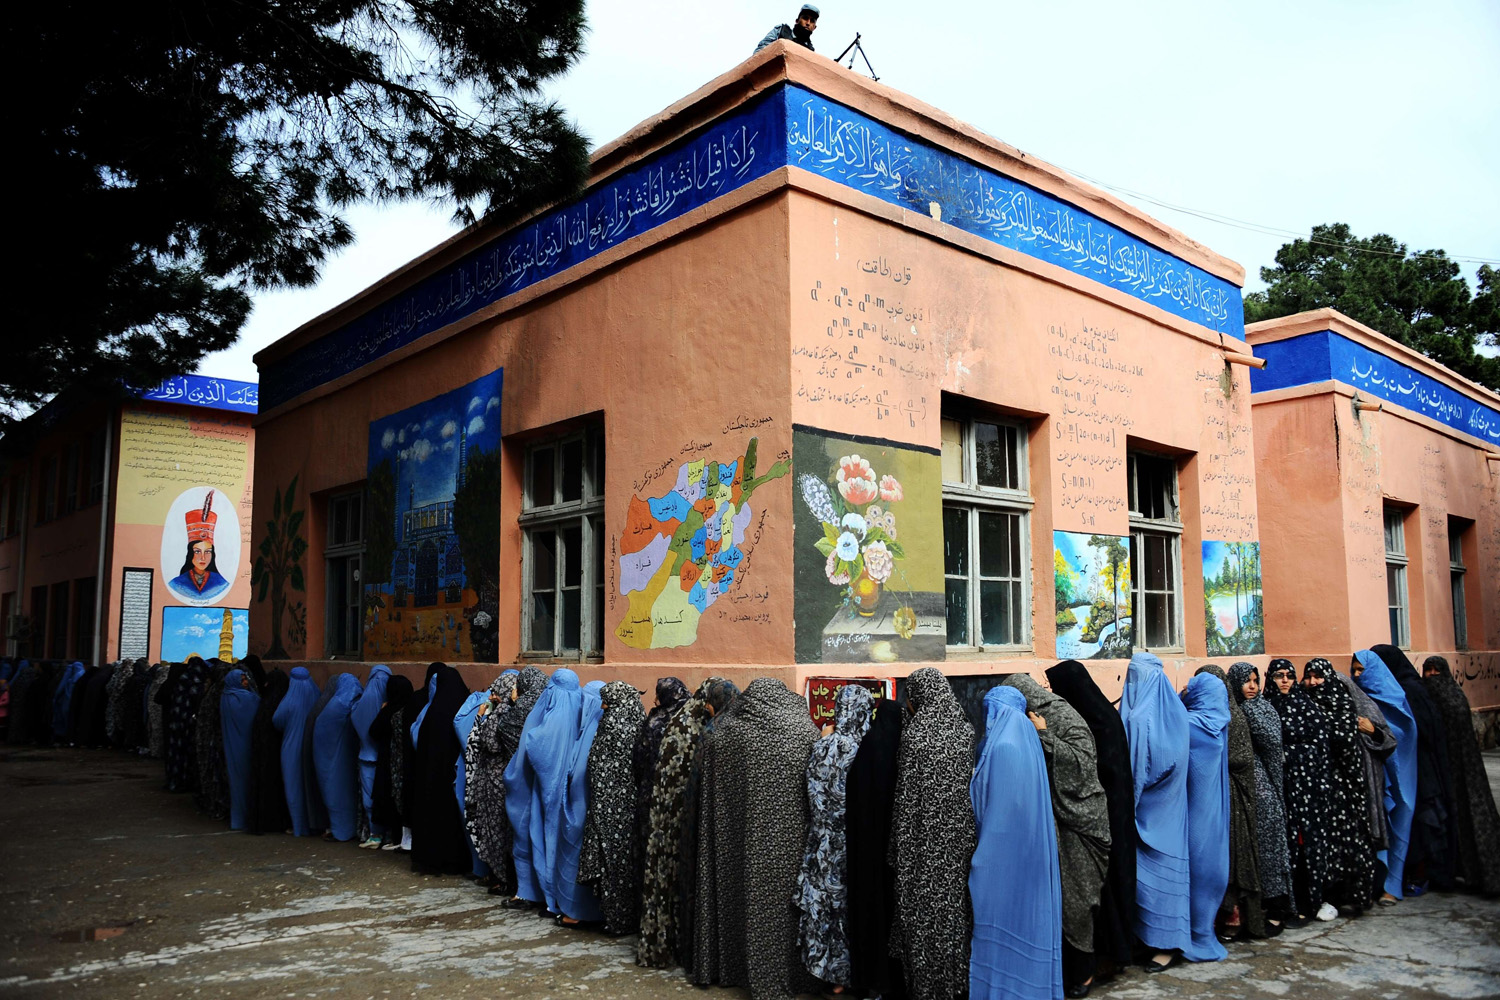 Apr. 5, 2014.                               Afghan women queue outside a school to vote in presidential elections in the northwestern city of Herat. Afghan voters went to the polls to choose a successor to President Hamid Karzai, braving Taliban threats in a landmark election held as US-led forces wind down their long intervention in the country.